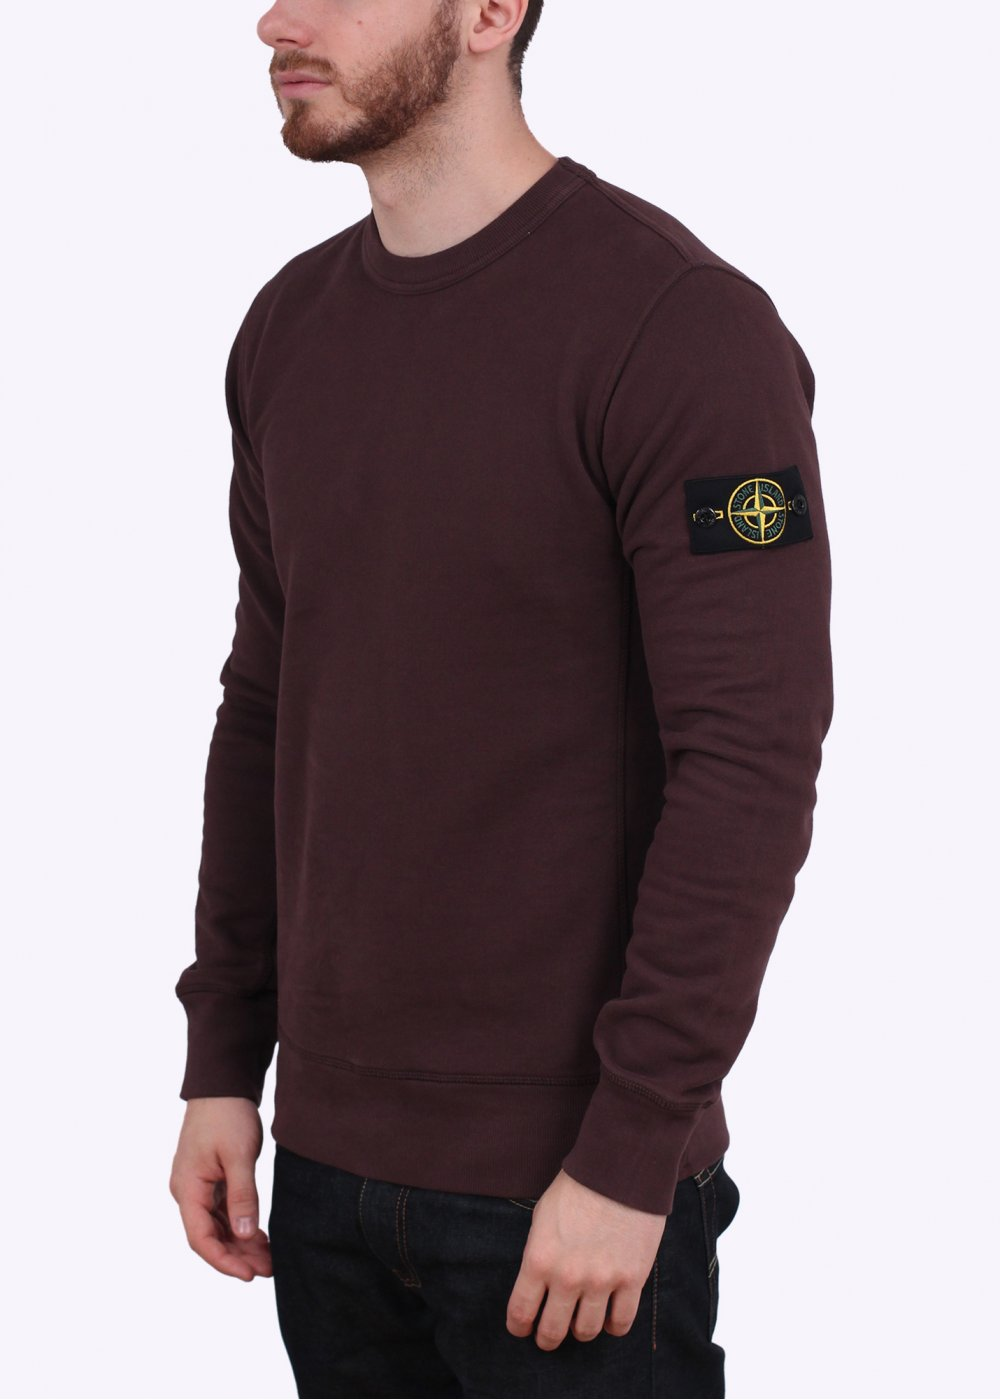 stone island garment dyed crew neck sweatshirt royal blue. Black Bedroom Furniture Sets. Home Design Ideas